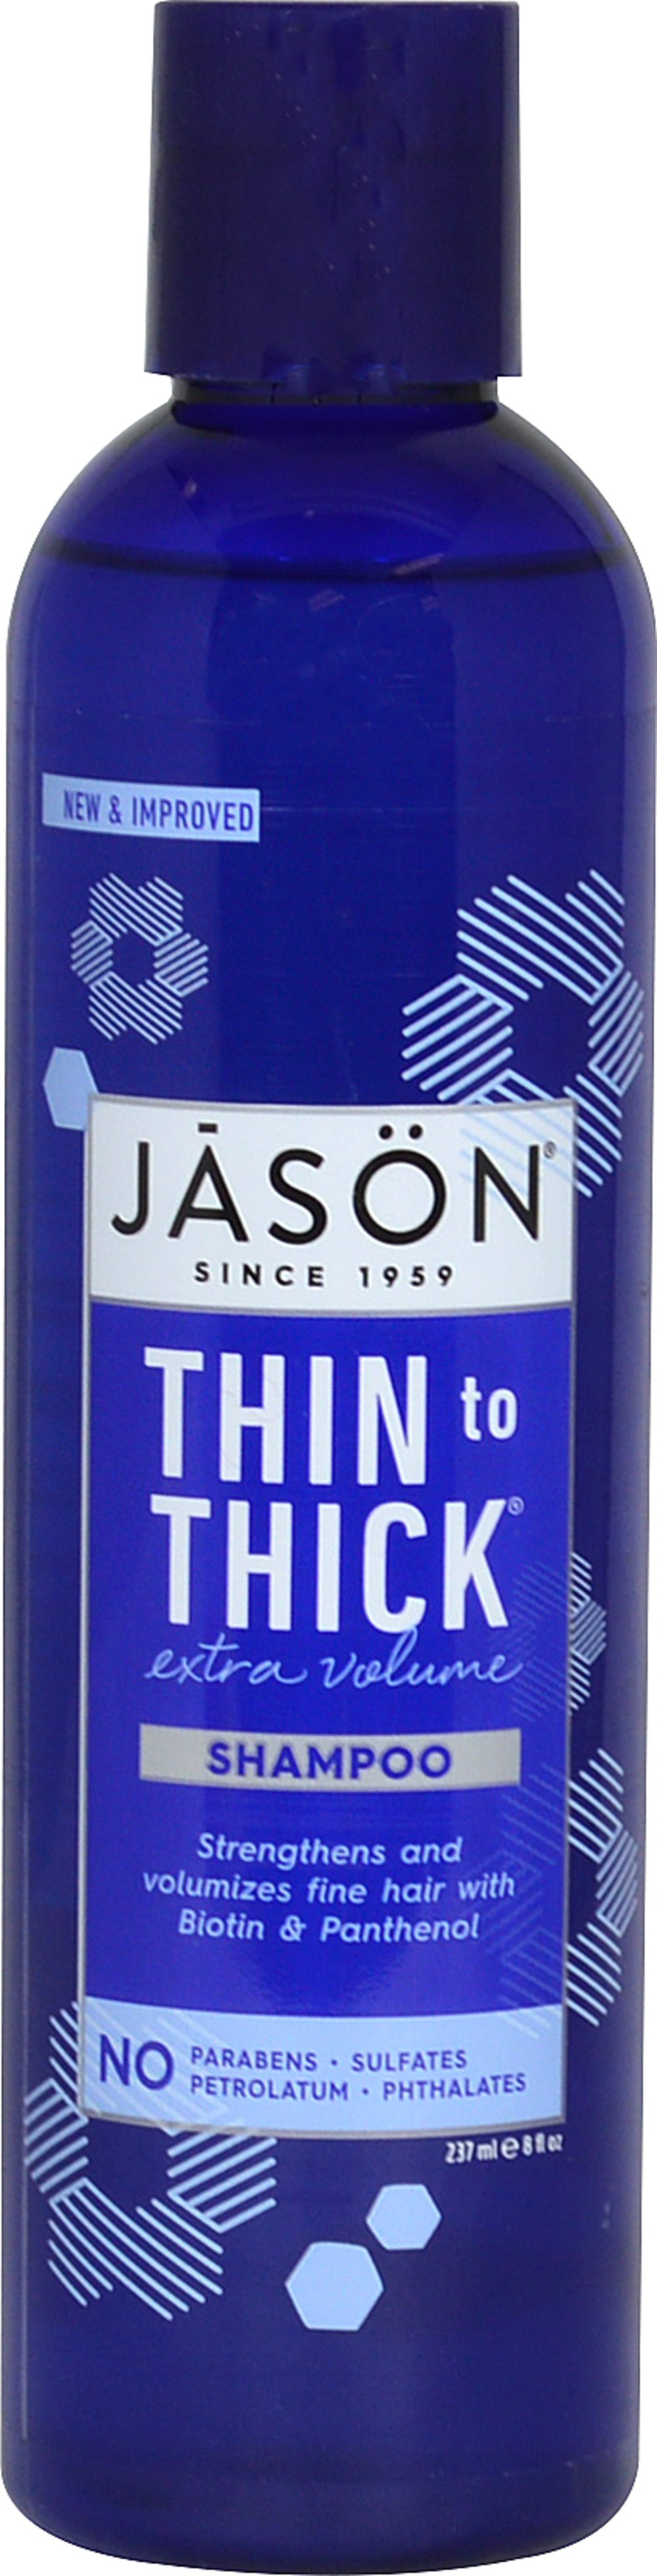 Jason® Thin To Thick® Extra Volume Shampoo  8 fl oz Shampoo  $7.99